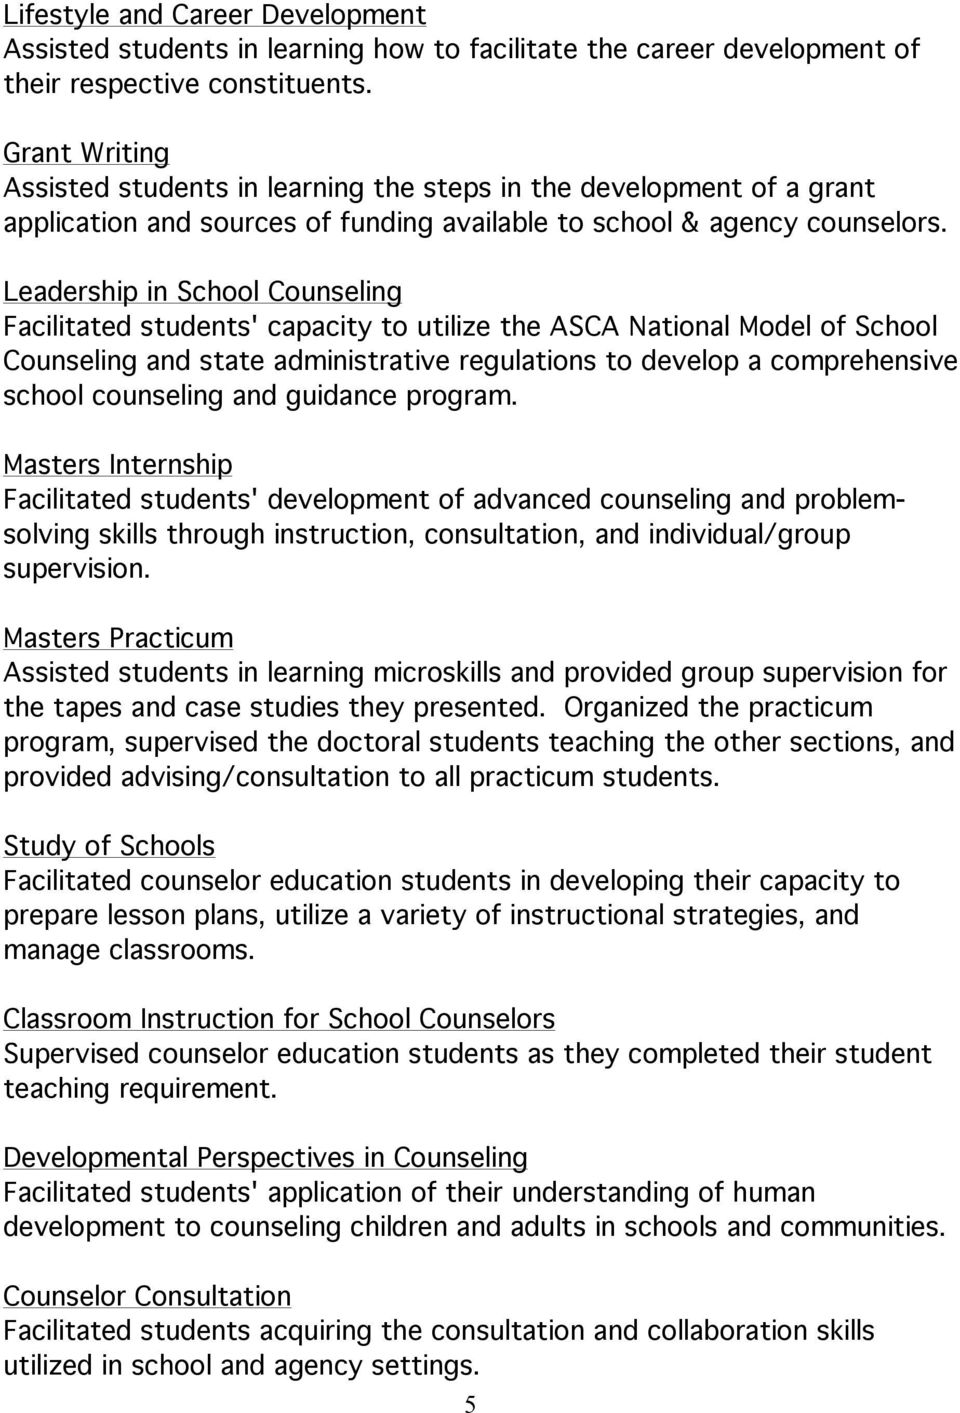 Leadership in School Counseling Facilitated students' capacity to utilize the ASCA National Model of School Counseling and state administrative regulations to develop a comprehensive school